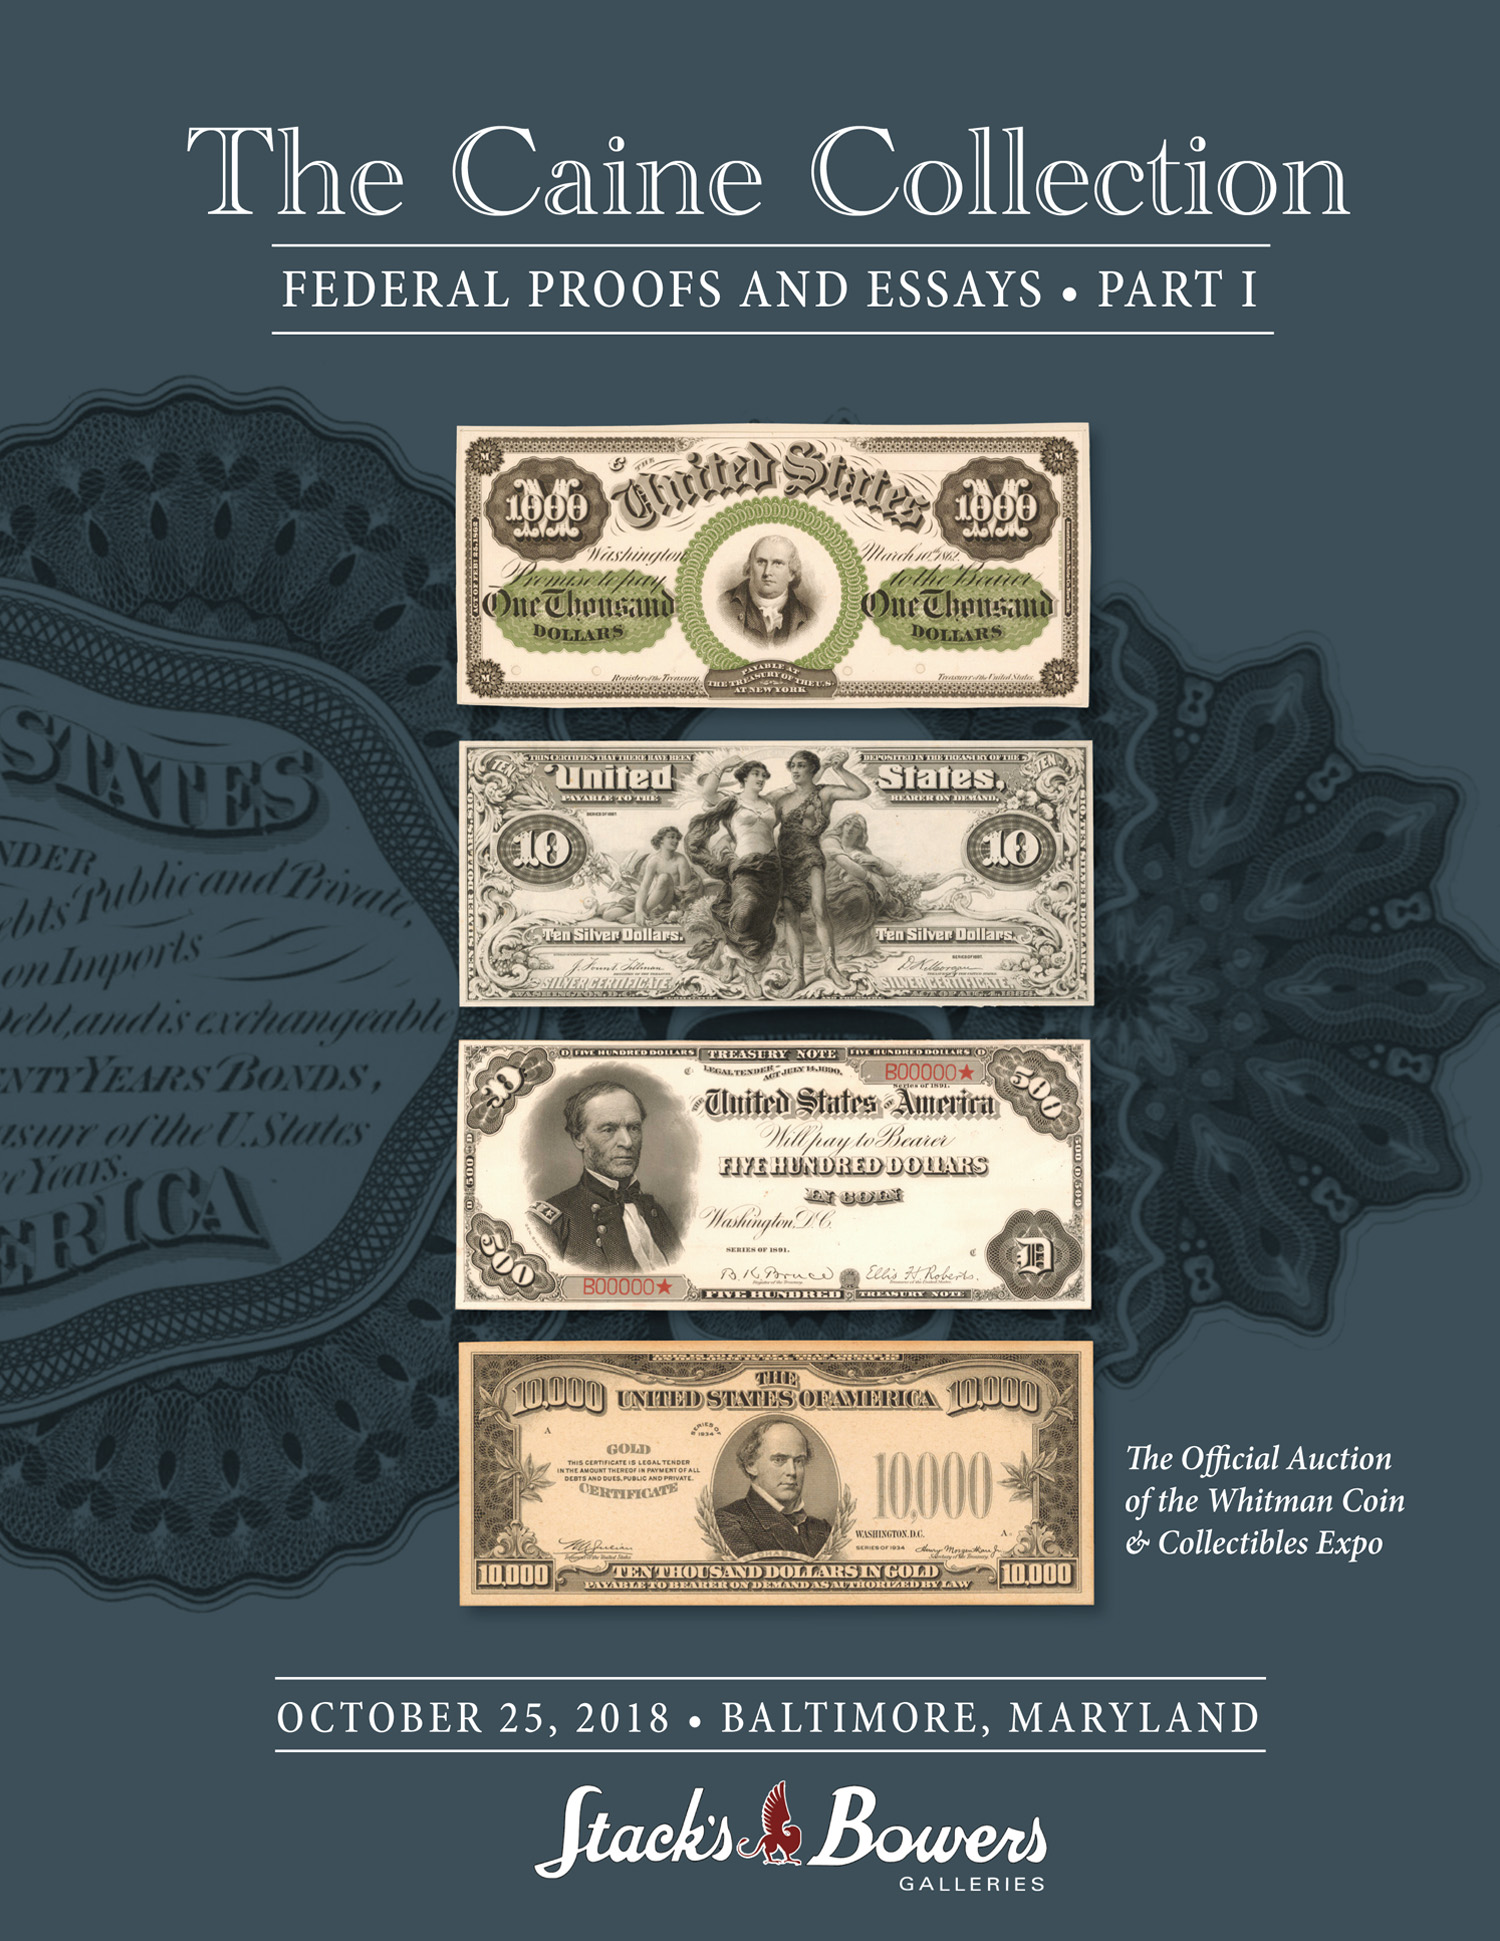 The Caine Collection, Federal Proofs and Essays: Part I